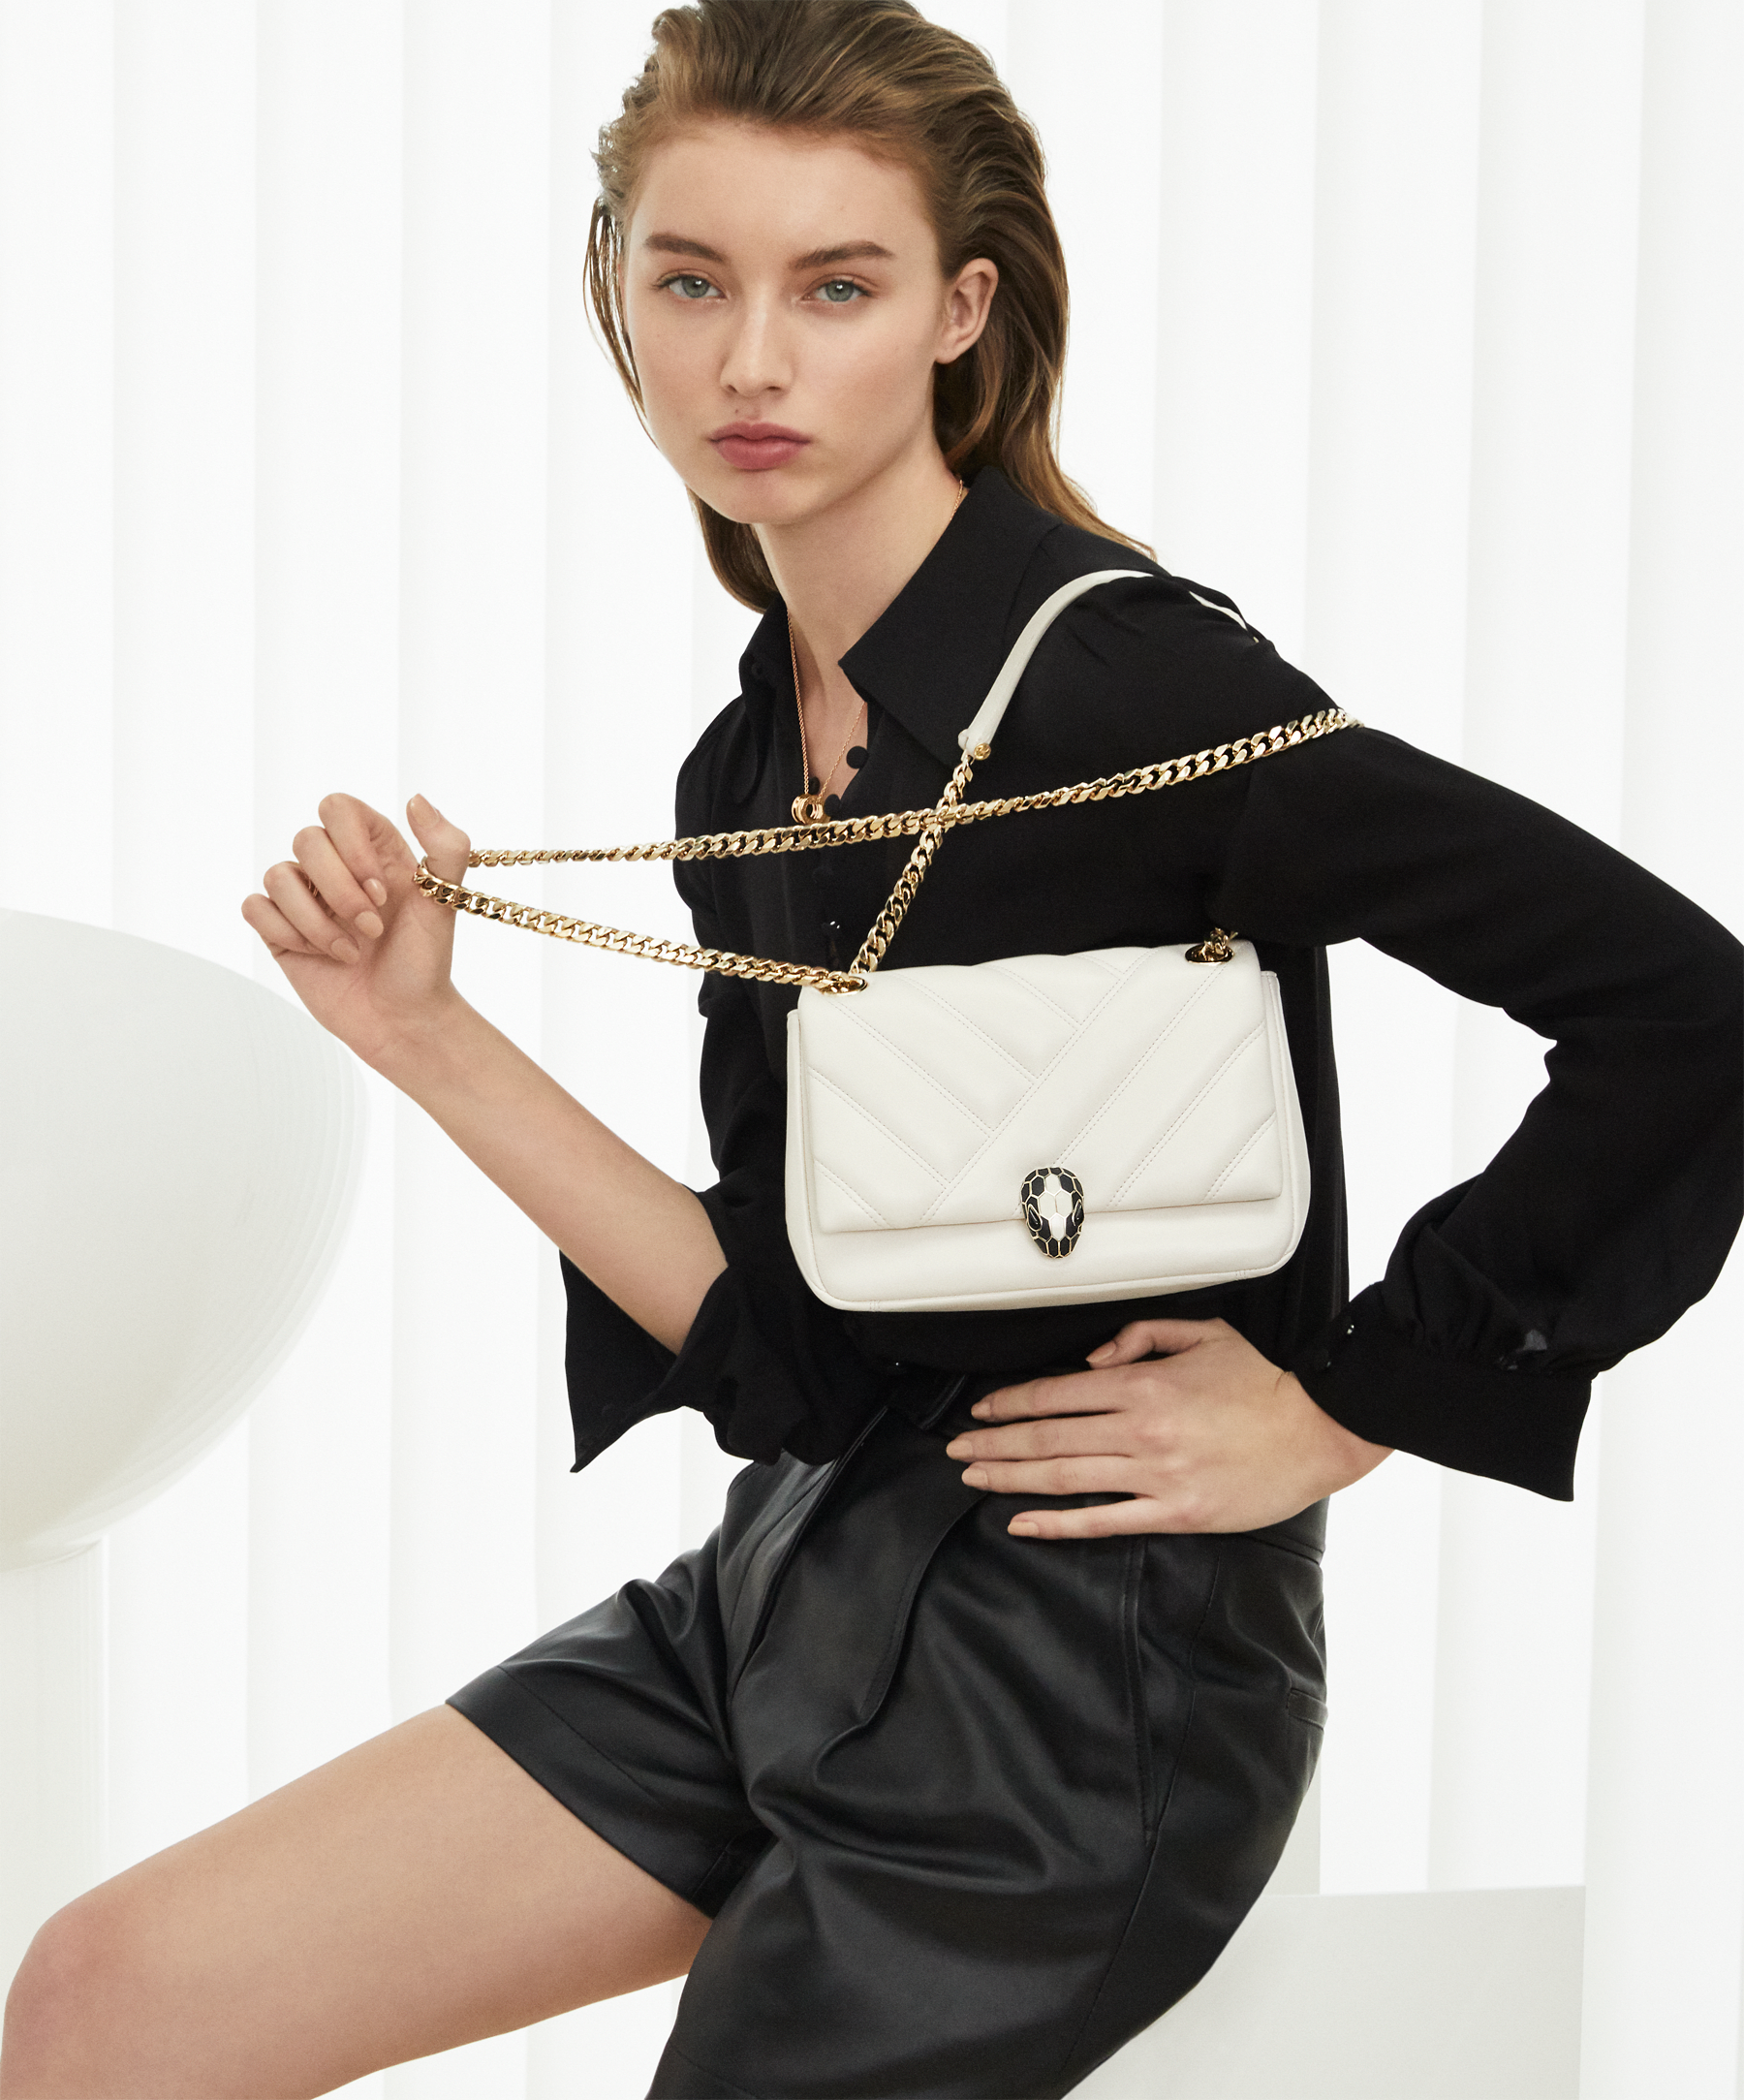 Serpenti Cabochon shoulder bag in soft matelassé white agate nappa leather with graphic motif and white agate calf leather. Snakehead closure in rose gold plated brass decorated with matte black and white enamel, and black onyx eyes. 287993 image 5